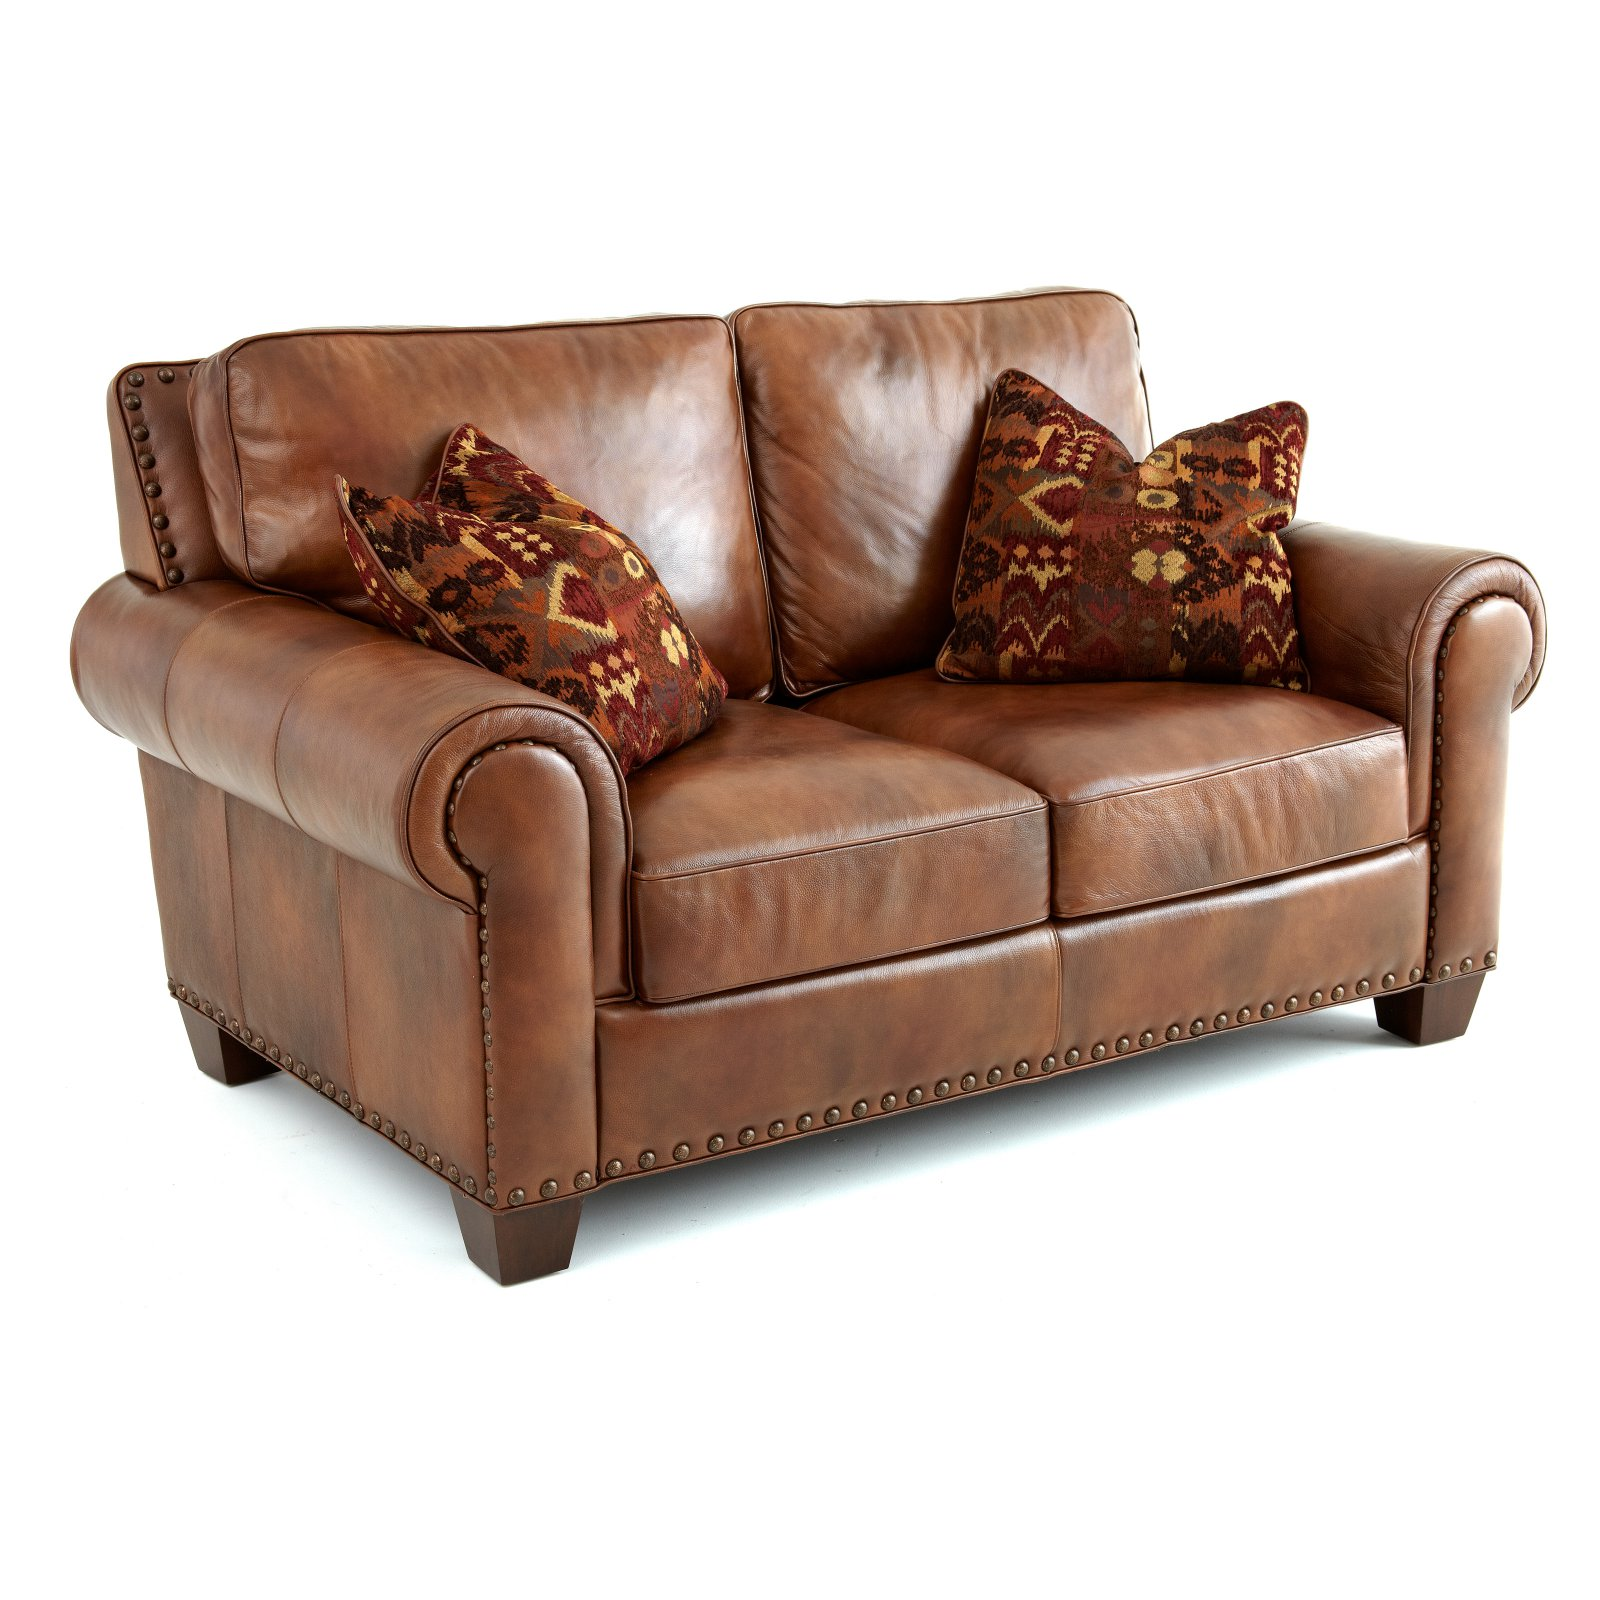 Leather Sofa For Accent Pillows: Steve Silver Silverado Leather Loveseat With 2 Accent